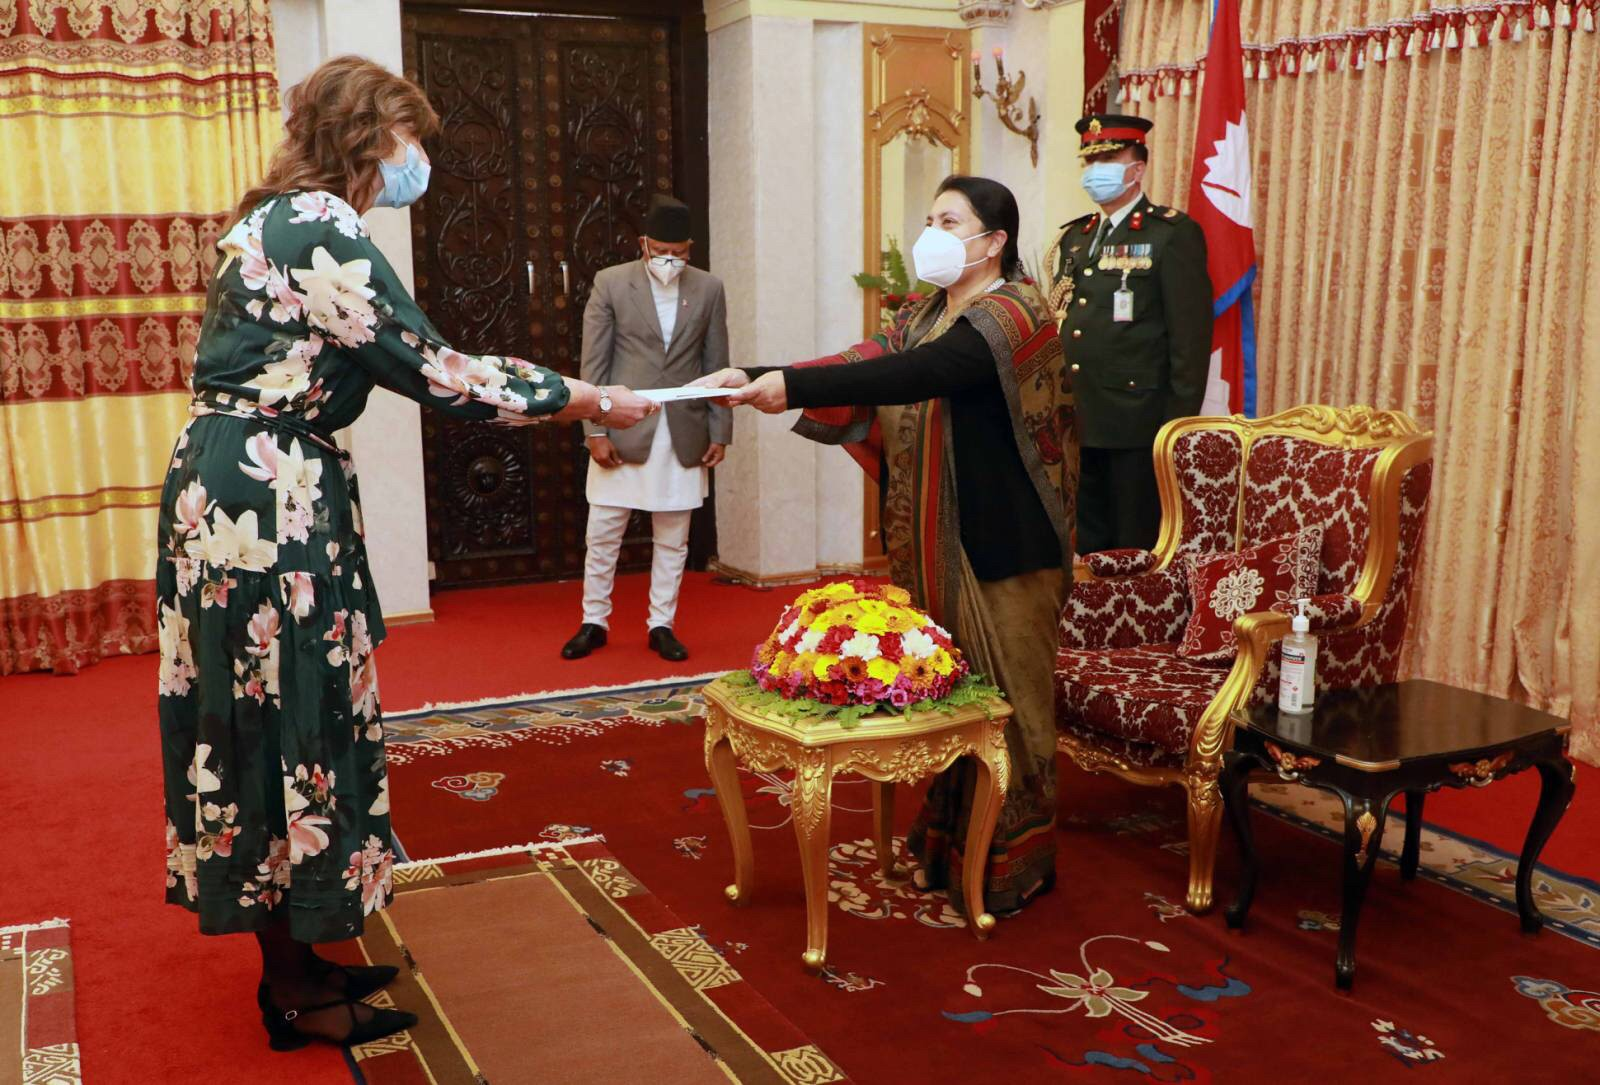 On 15 February 2021, Australia's Ambassador to Nepal, Her Excellency Ms Felicity Jane Volk, presented her credentials to the Right Honourable President of Nepal, Bidya Devi Bhandari, at an event organised at the Shital Niwas.